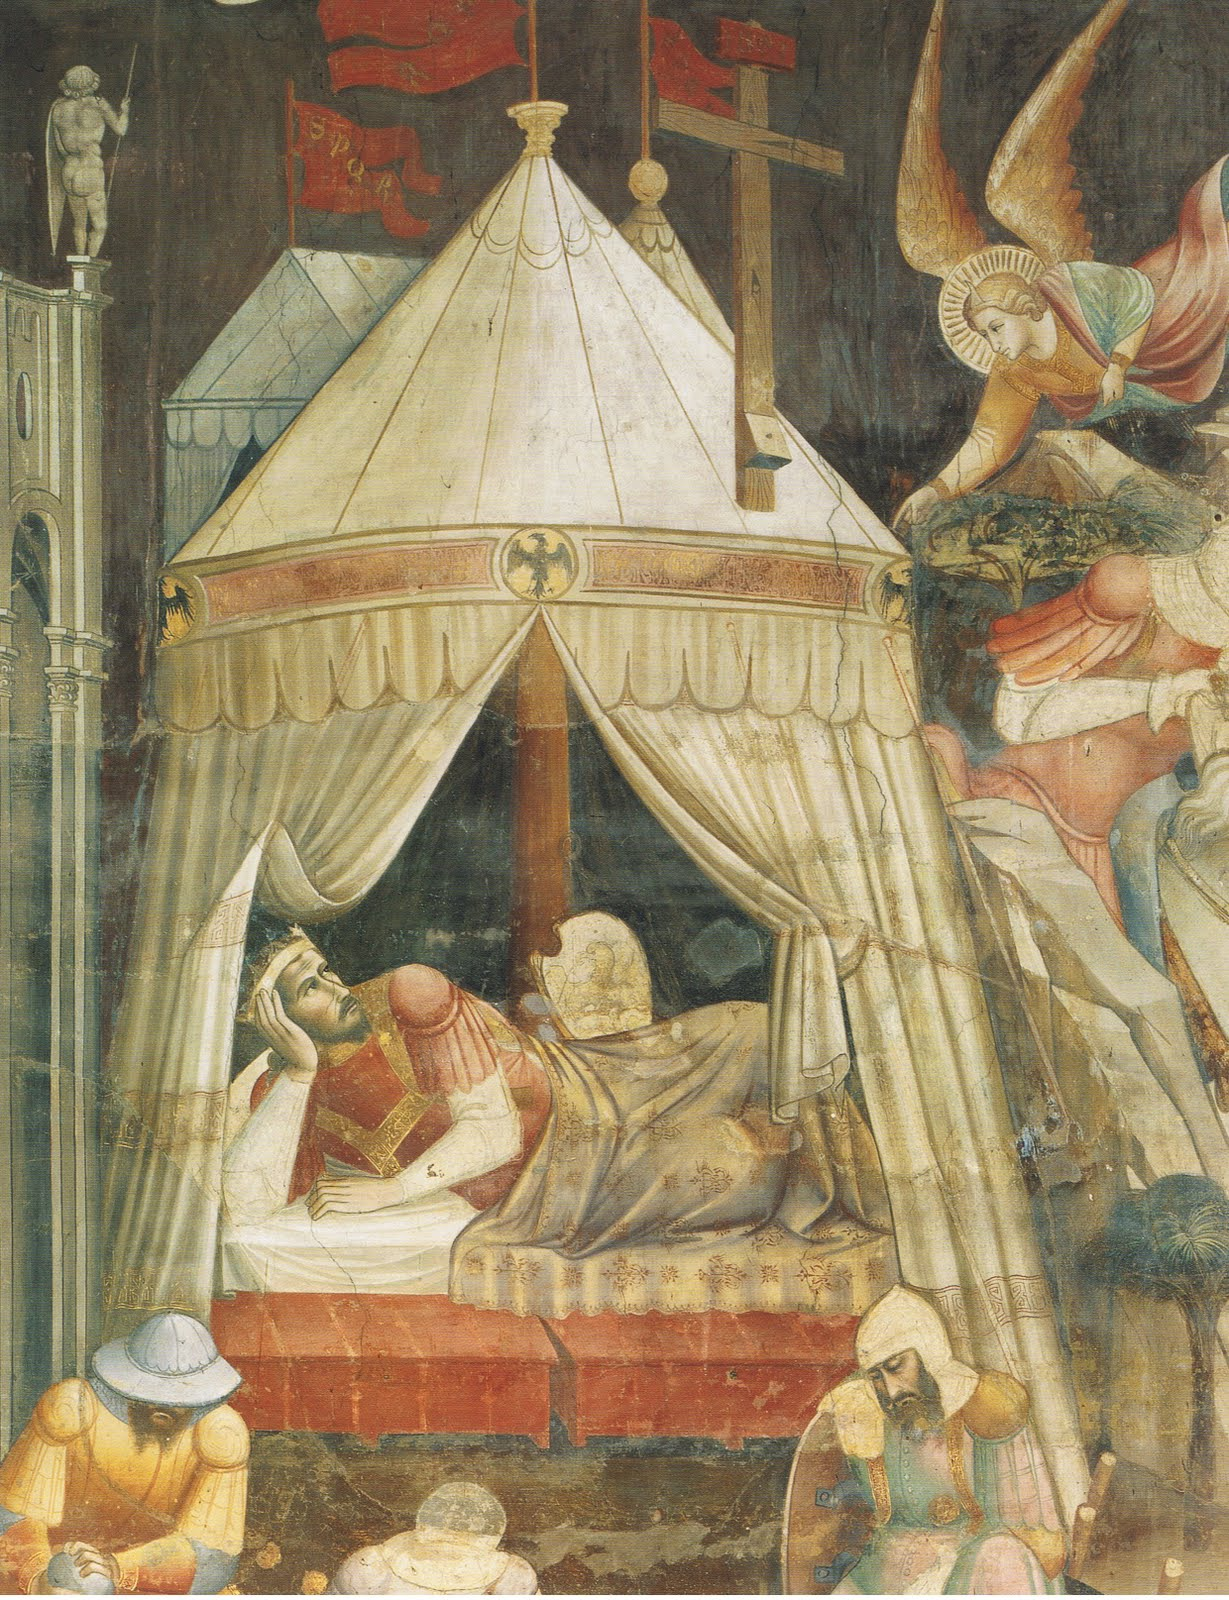 Agnolo Gaddi The Dream of Emperor Heraclius ca. 1385-87. A rectangular tent with a vertical end wall is visible behind the emperoru0027s pavilion. & A Commonplace Book: Rectangular Medieval Tents